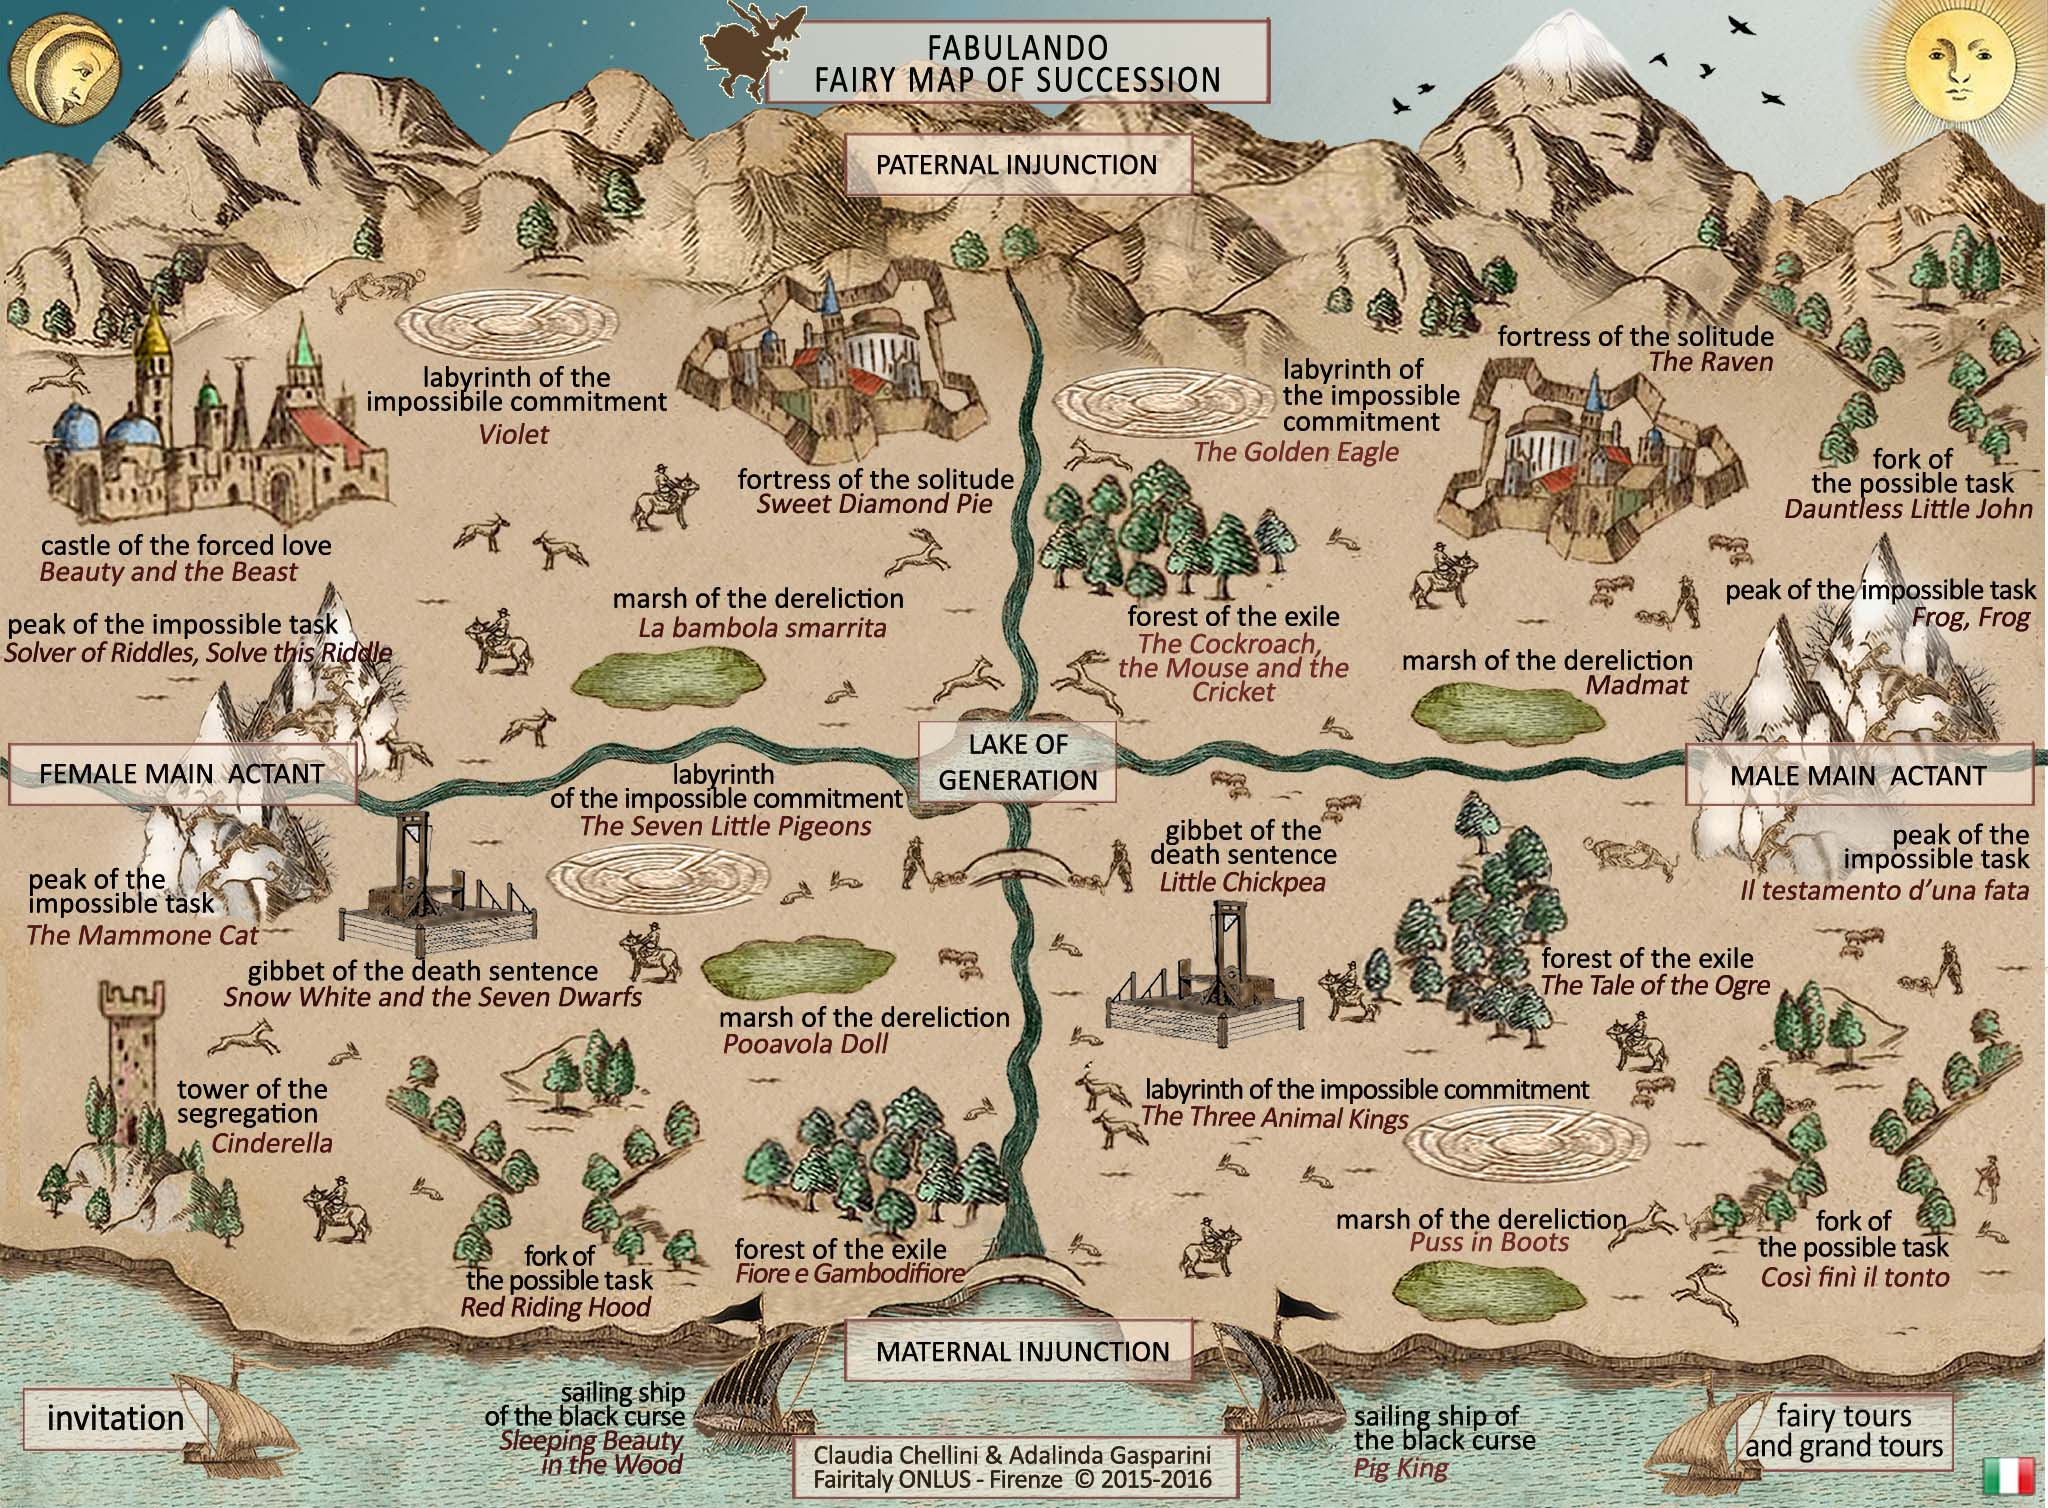 Fairy Map of the Succession